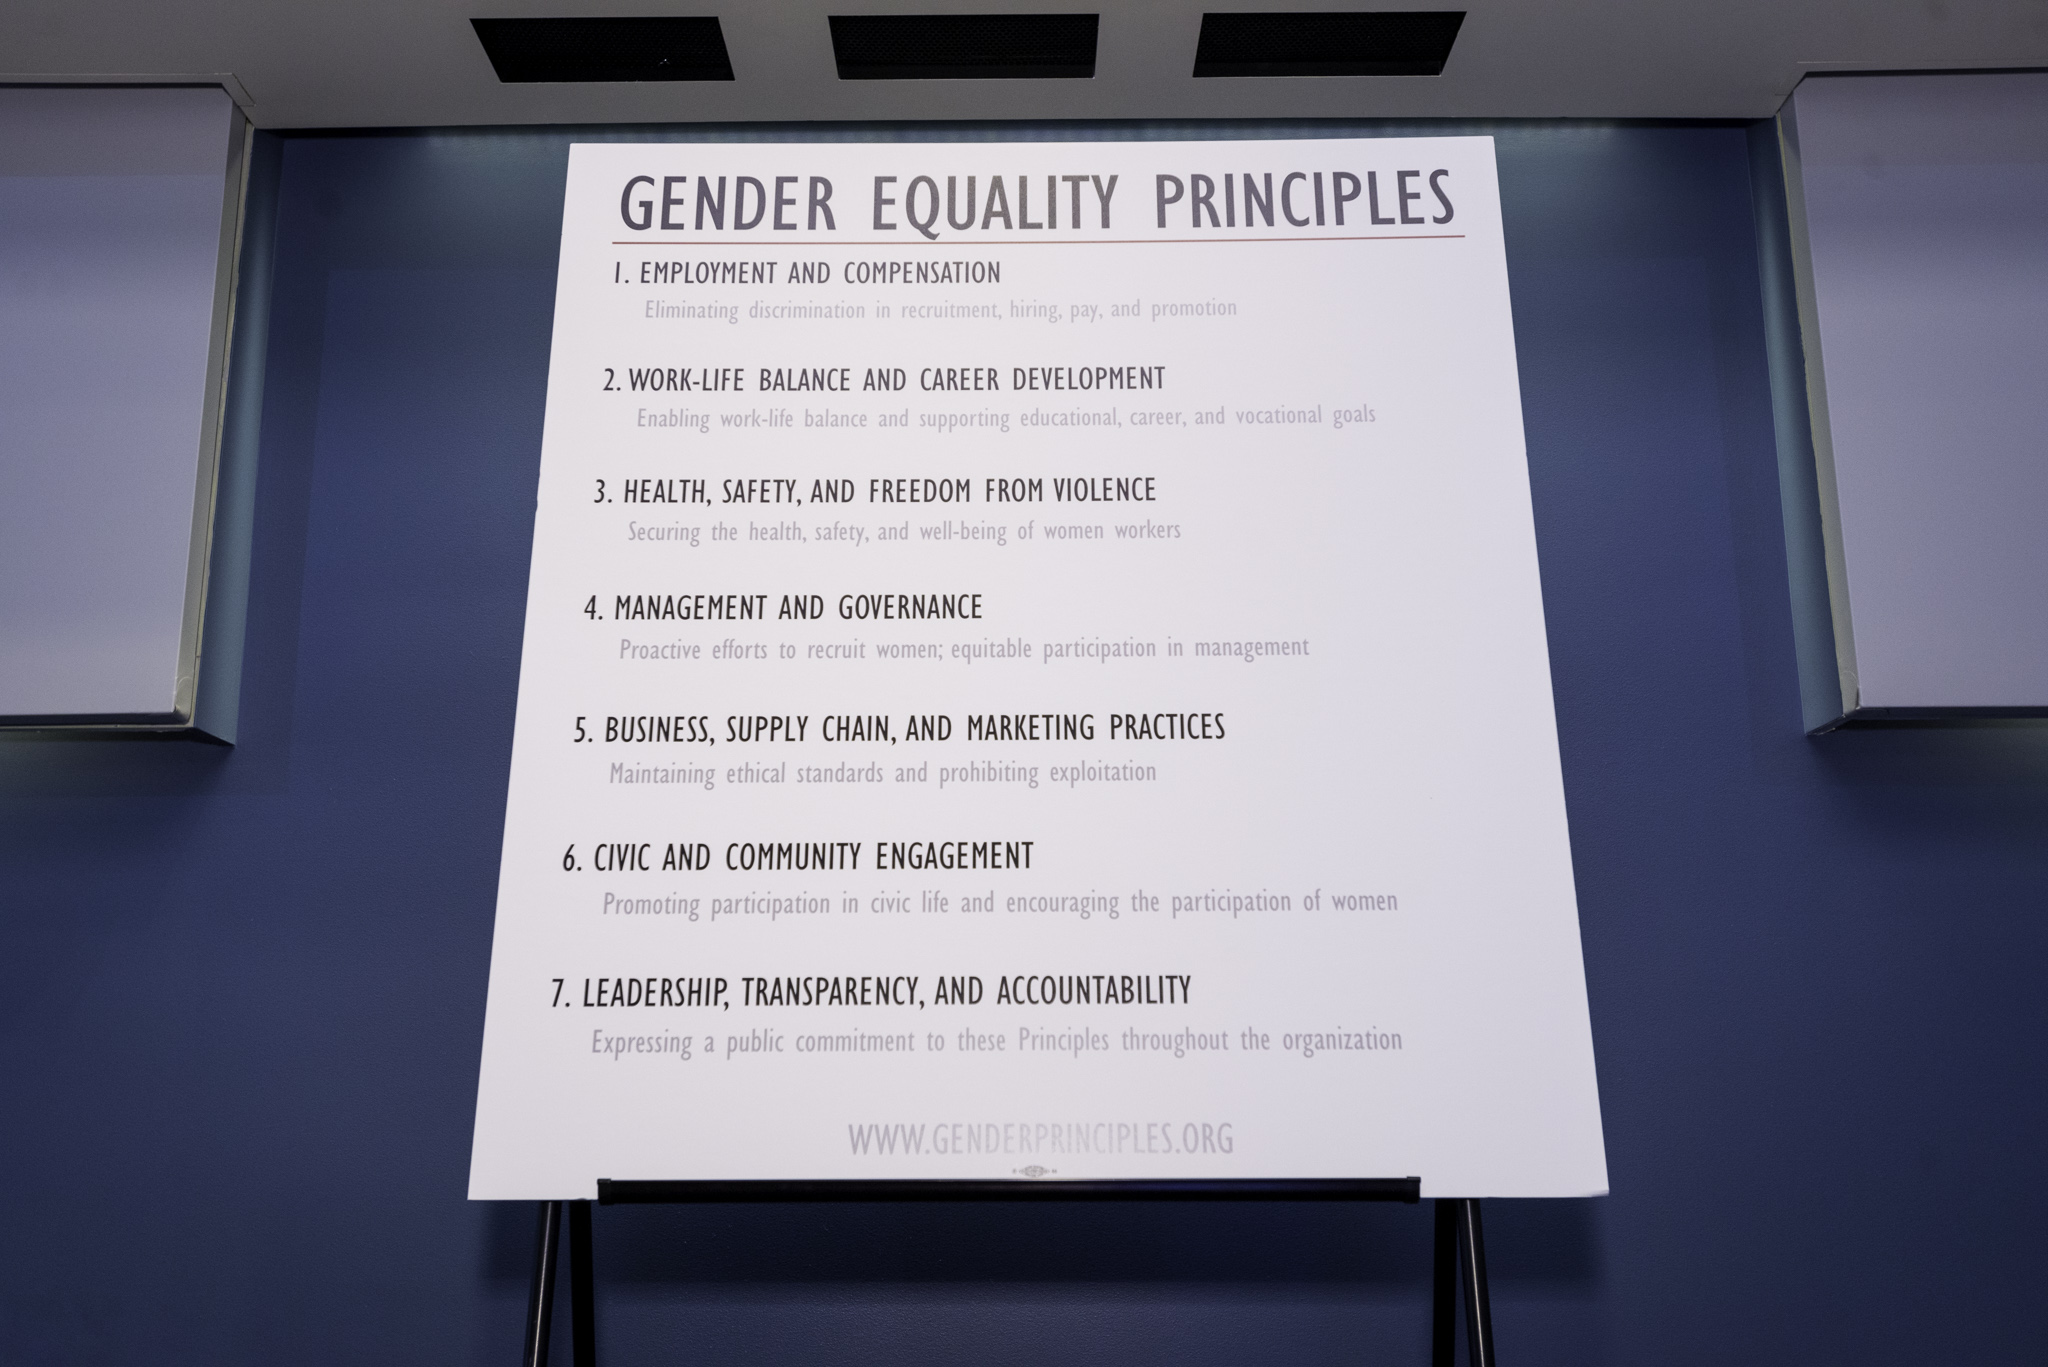 Gender Equality Principles Board on January 30, 2015